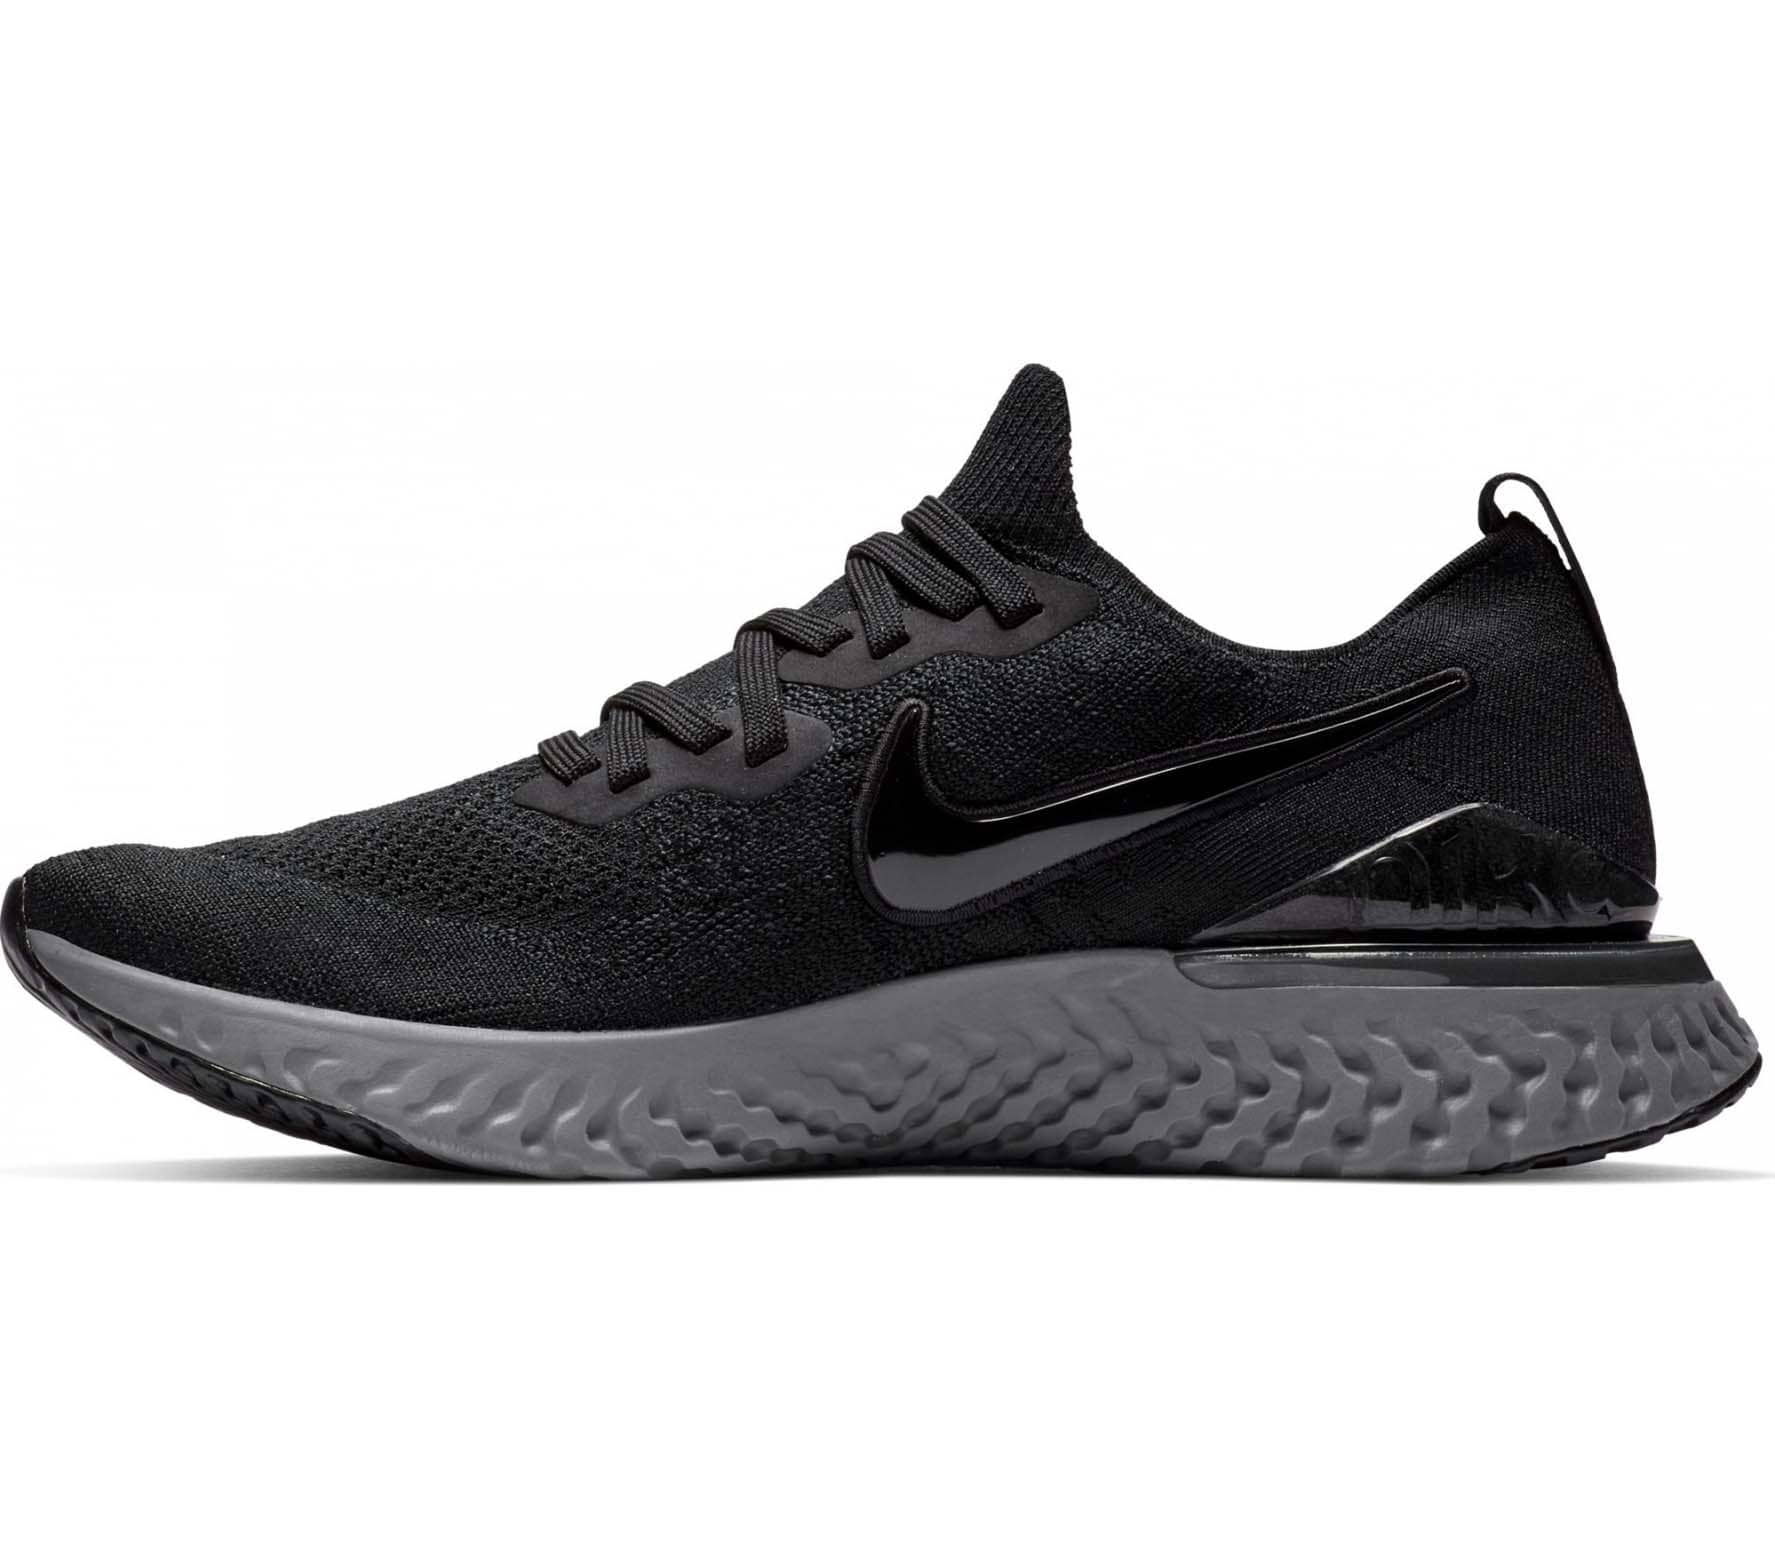 Epic React Flyknit 2 Hommes Chaussures running